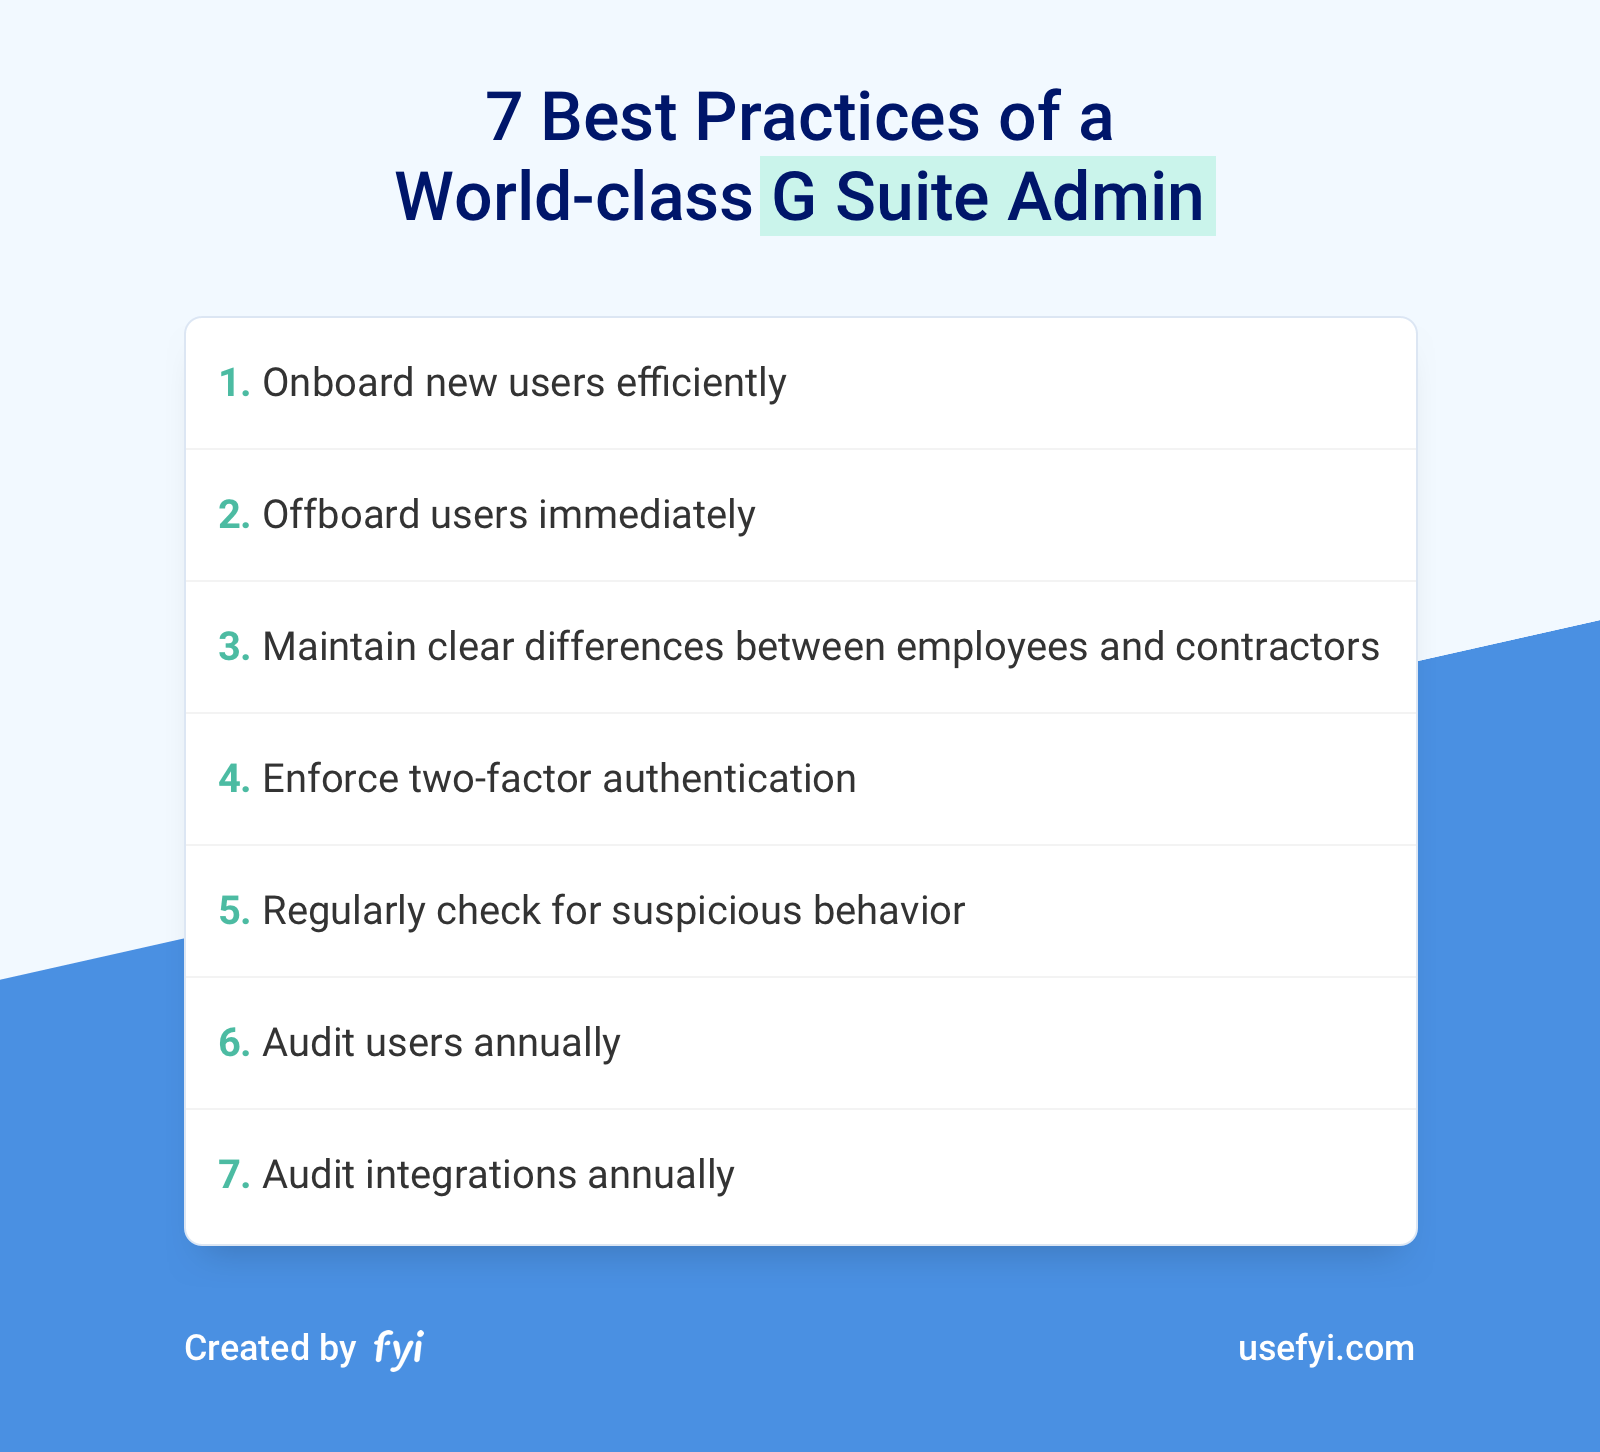 G Suite Admin Best Practices